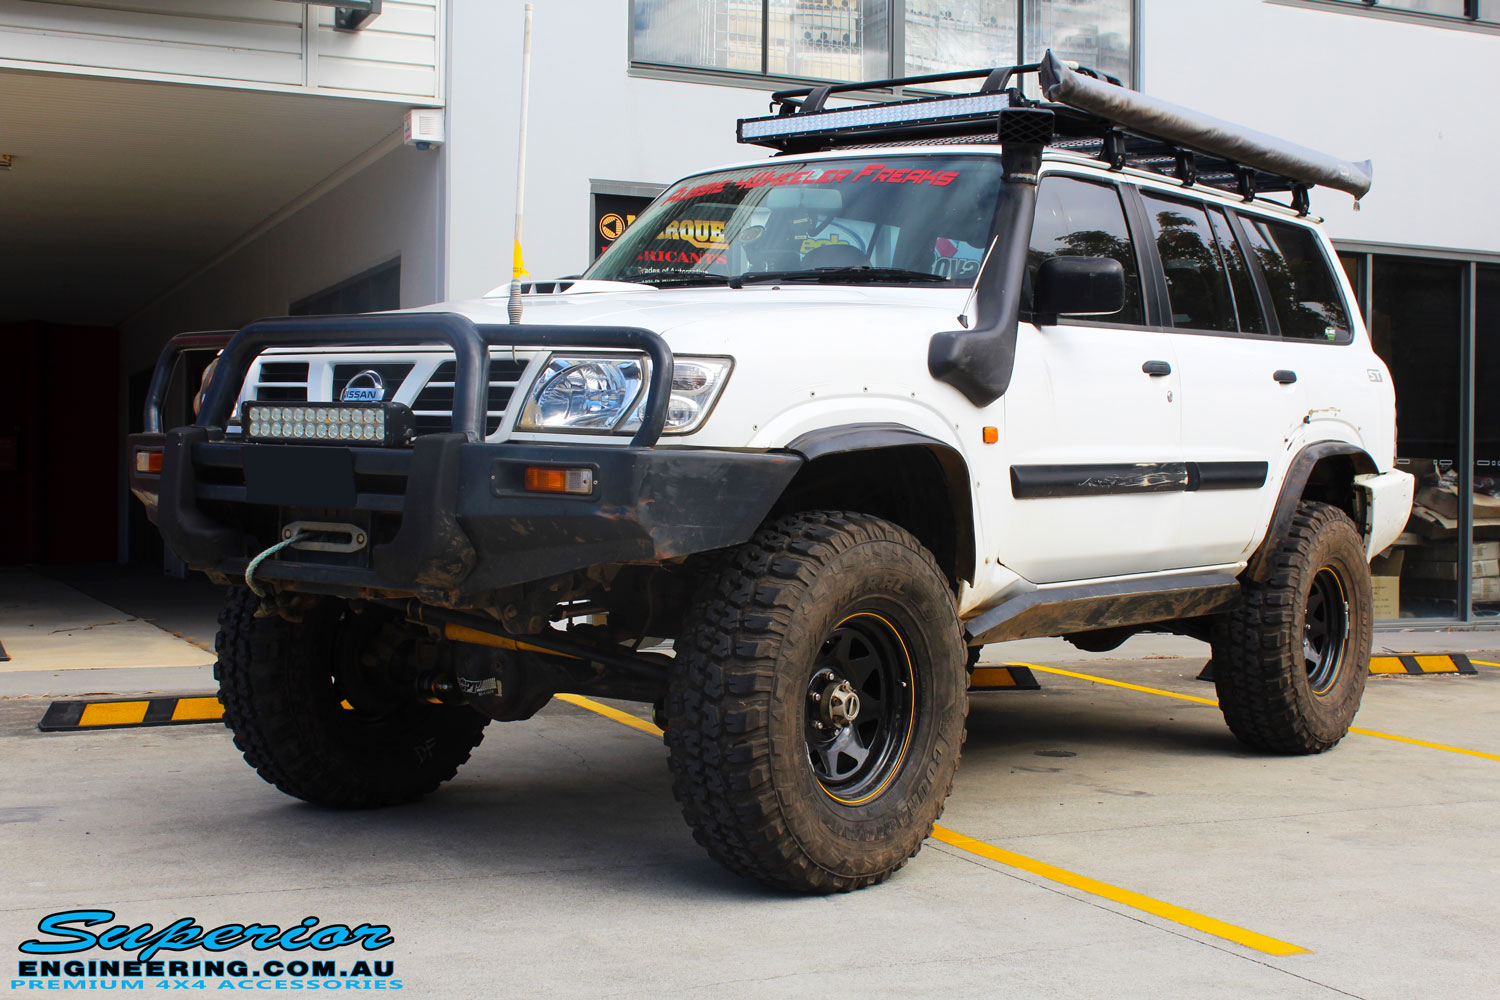 Left front side view of a White Nissan GU Patrol Wagon after being fitted with Superior Hybrid 5 Link Radius Arms, 55mm Shock Tower Lift Kit & Bump Stop Extensions